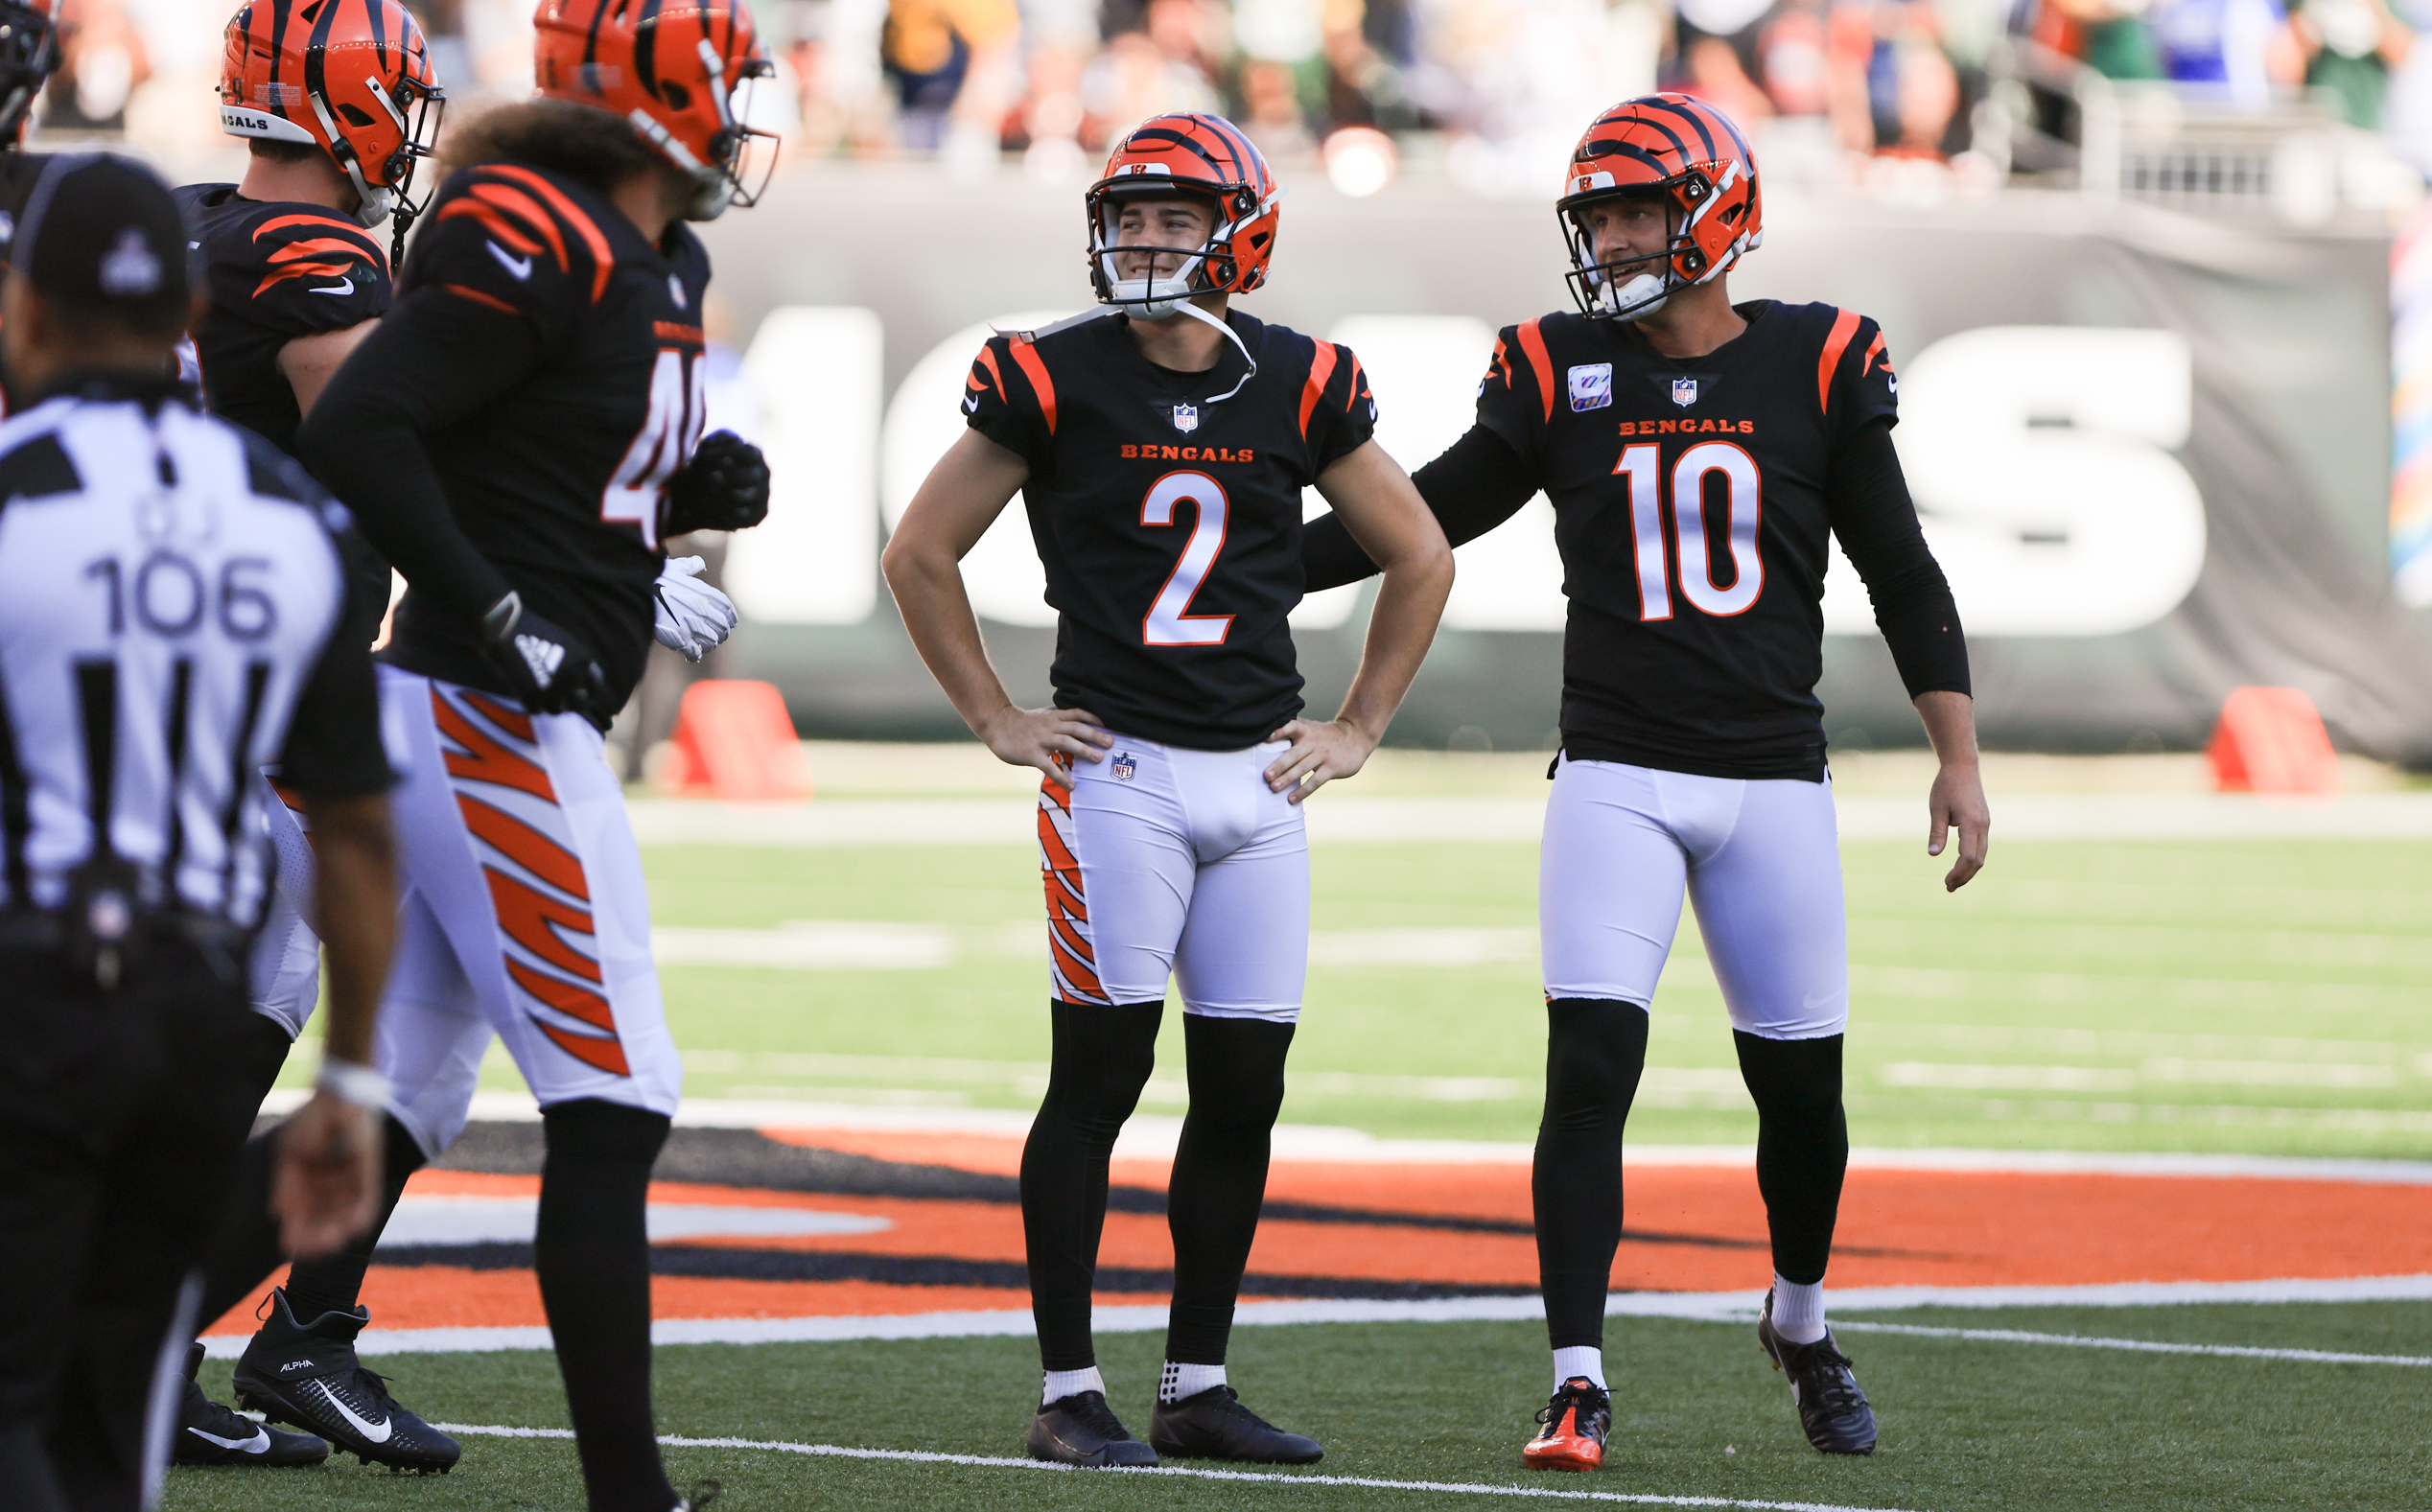 NFL: OCT 10 Packers at Bengals